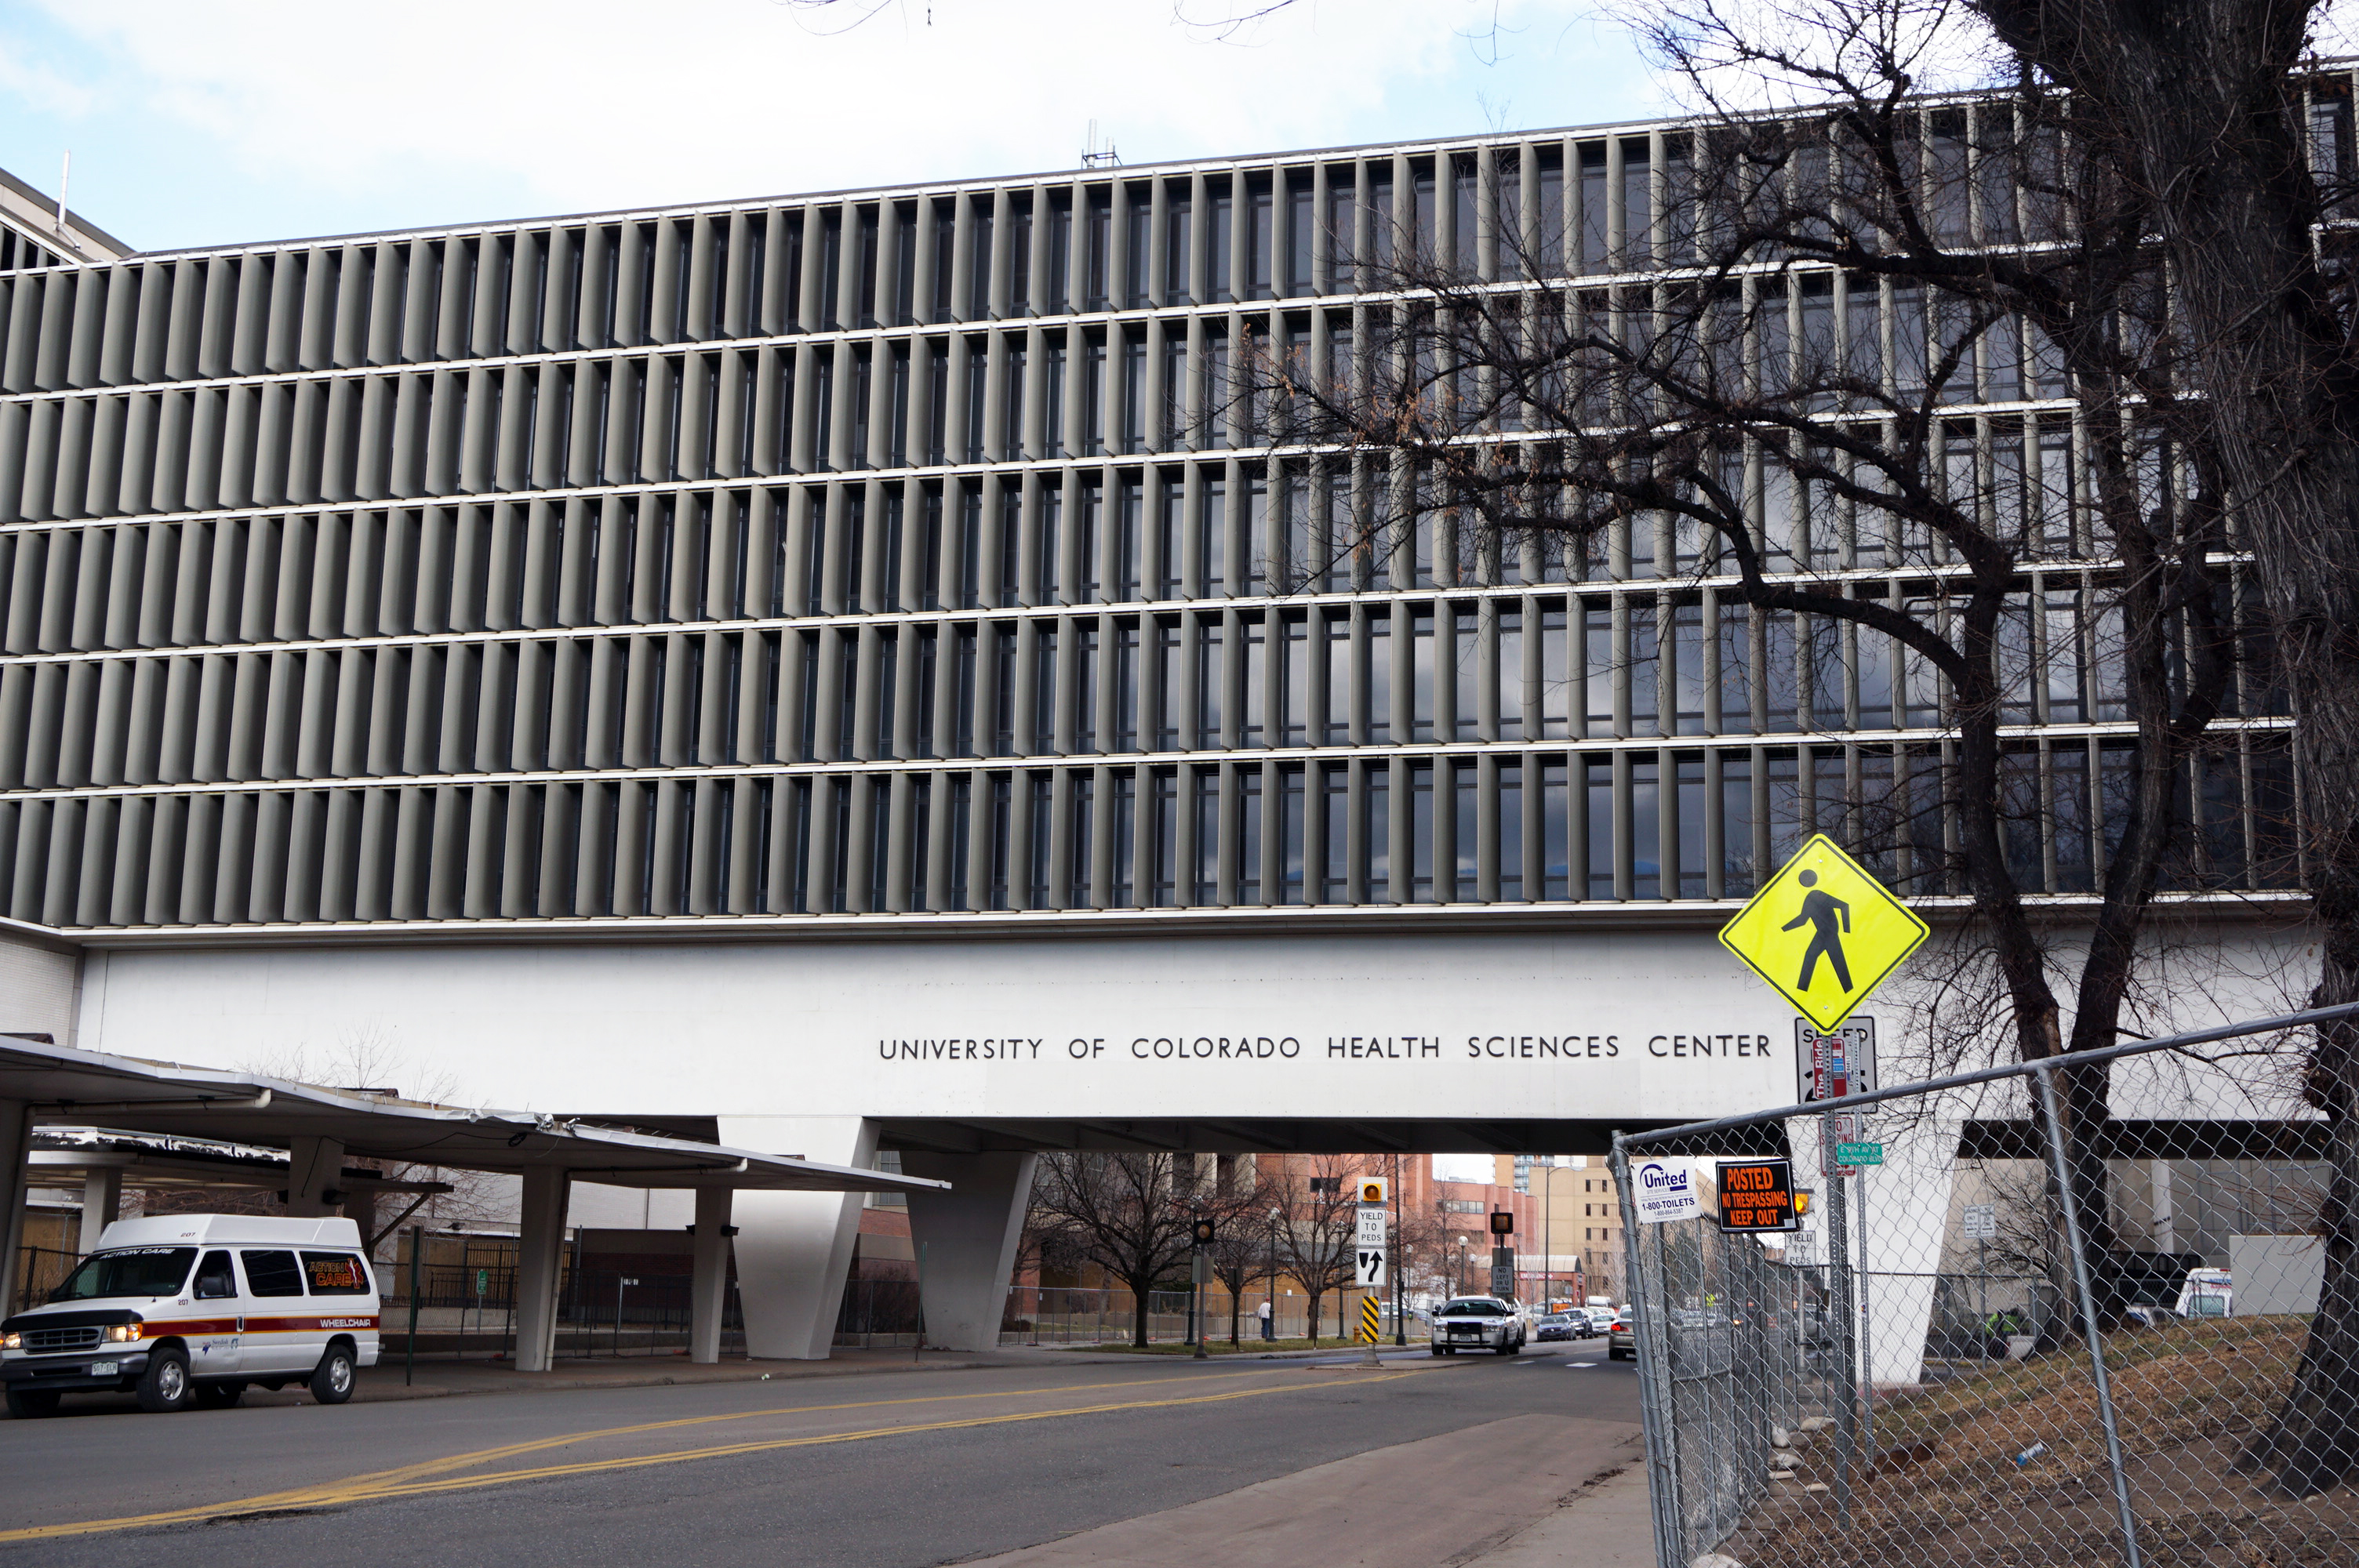 University Of Colorado Health Sciences Center >> Bridge Over 9th Avenue Remnant Of Former Cu Hospital Campus To Be